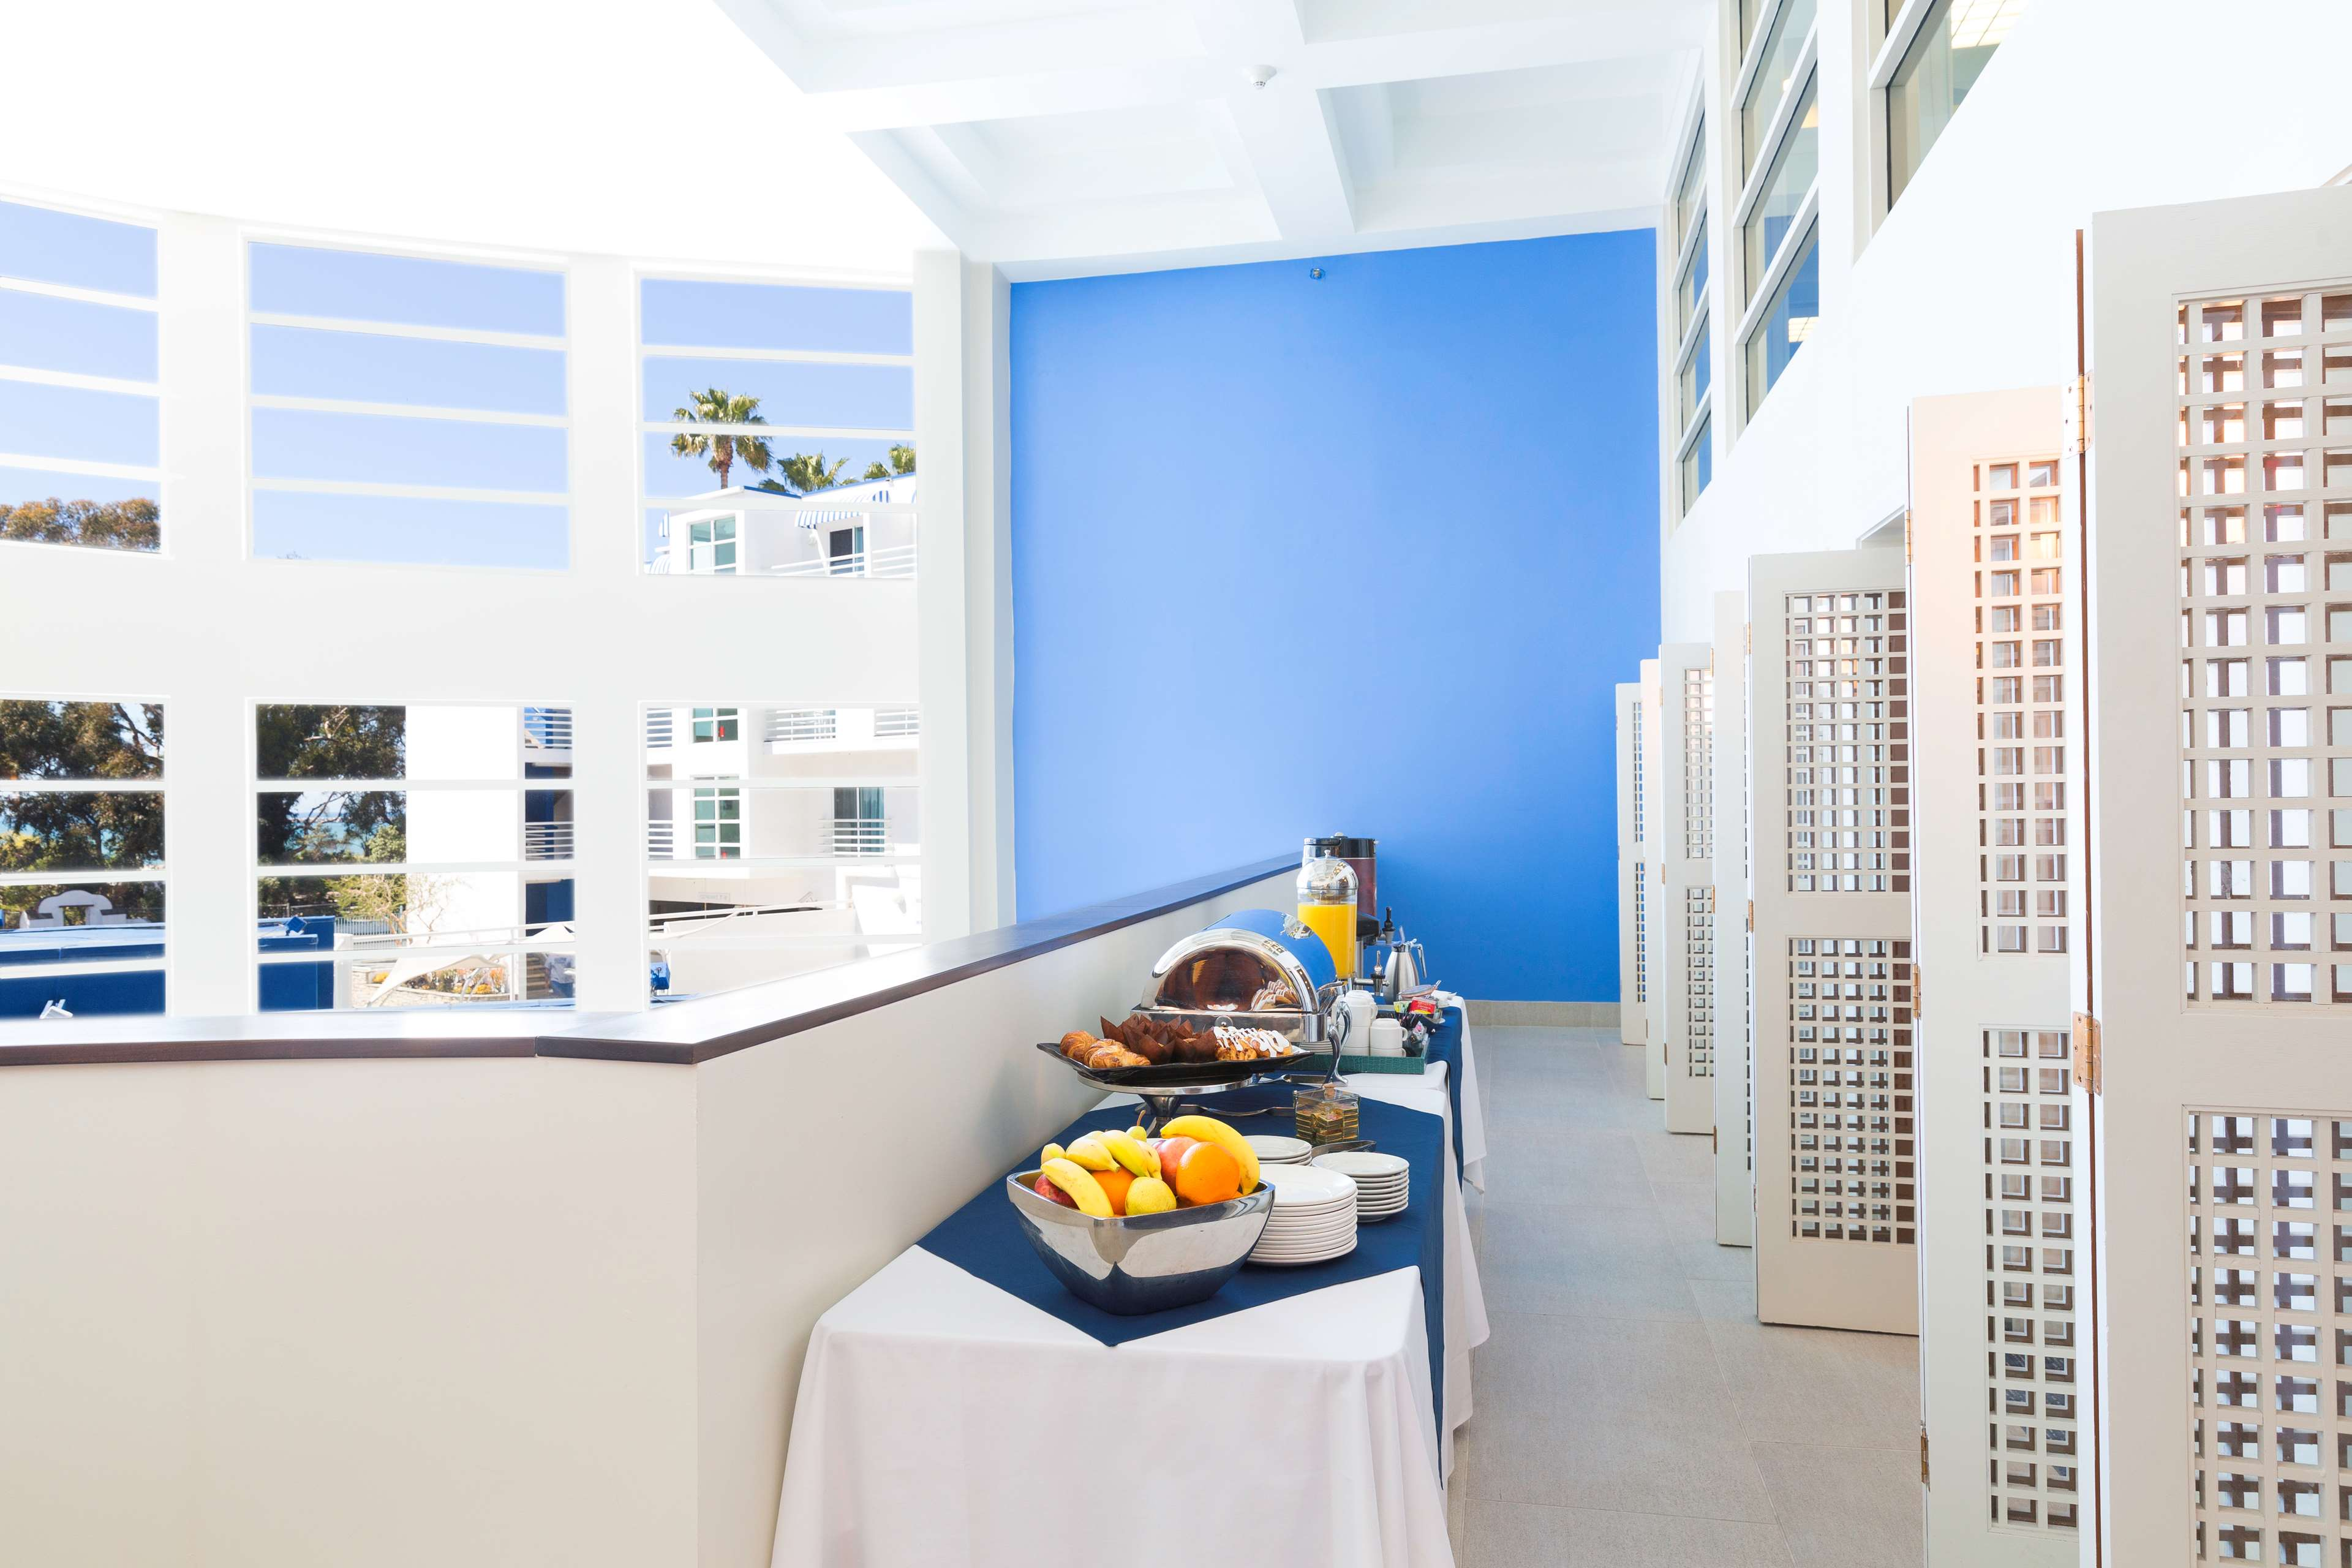 DoubleTree Suites by Hilton Hotel Doheny Beach - Dana Point image 24